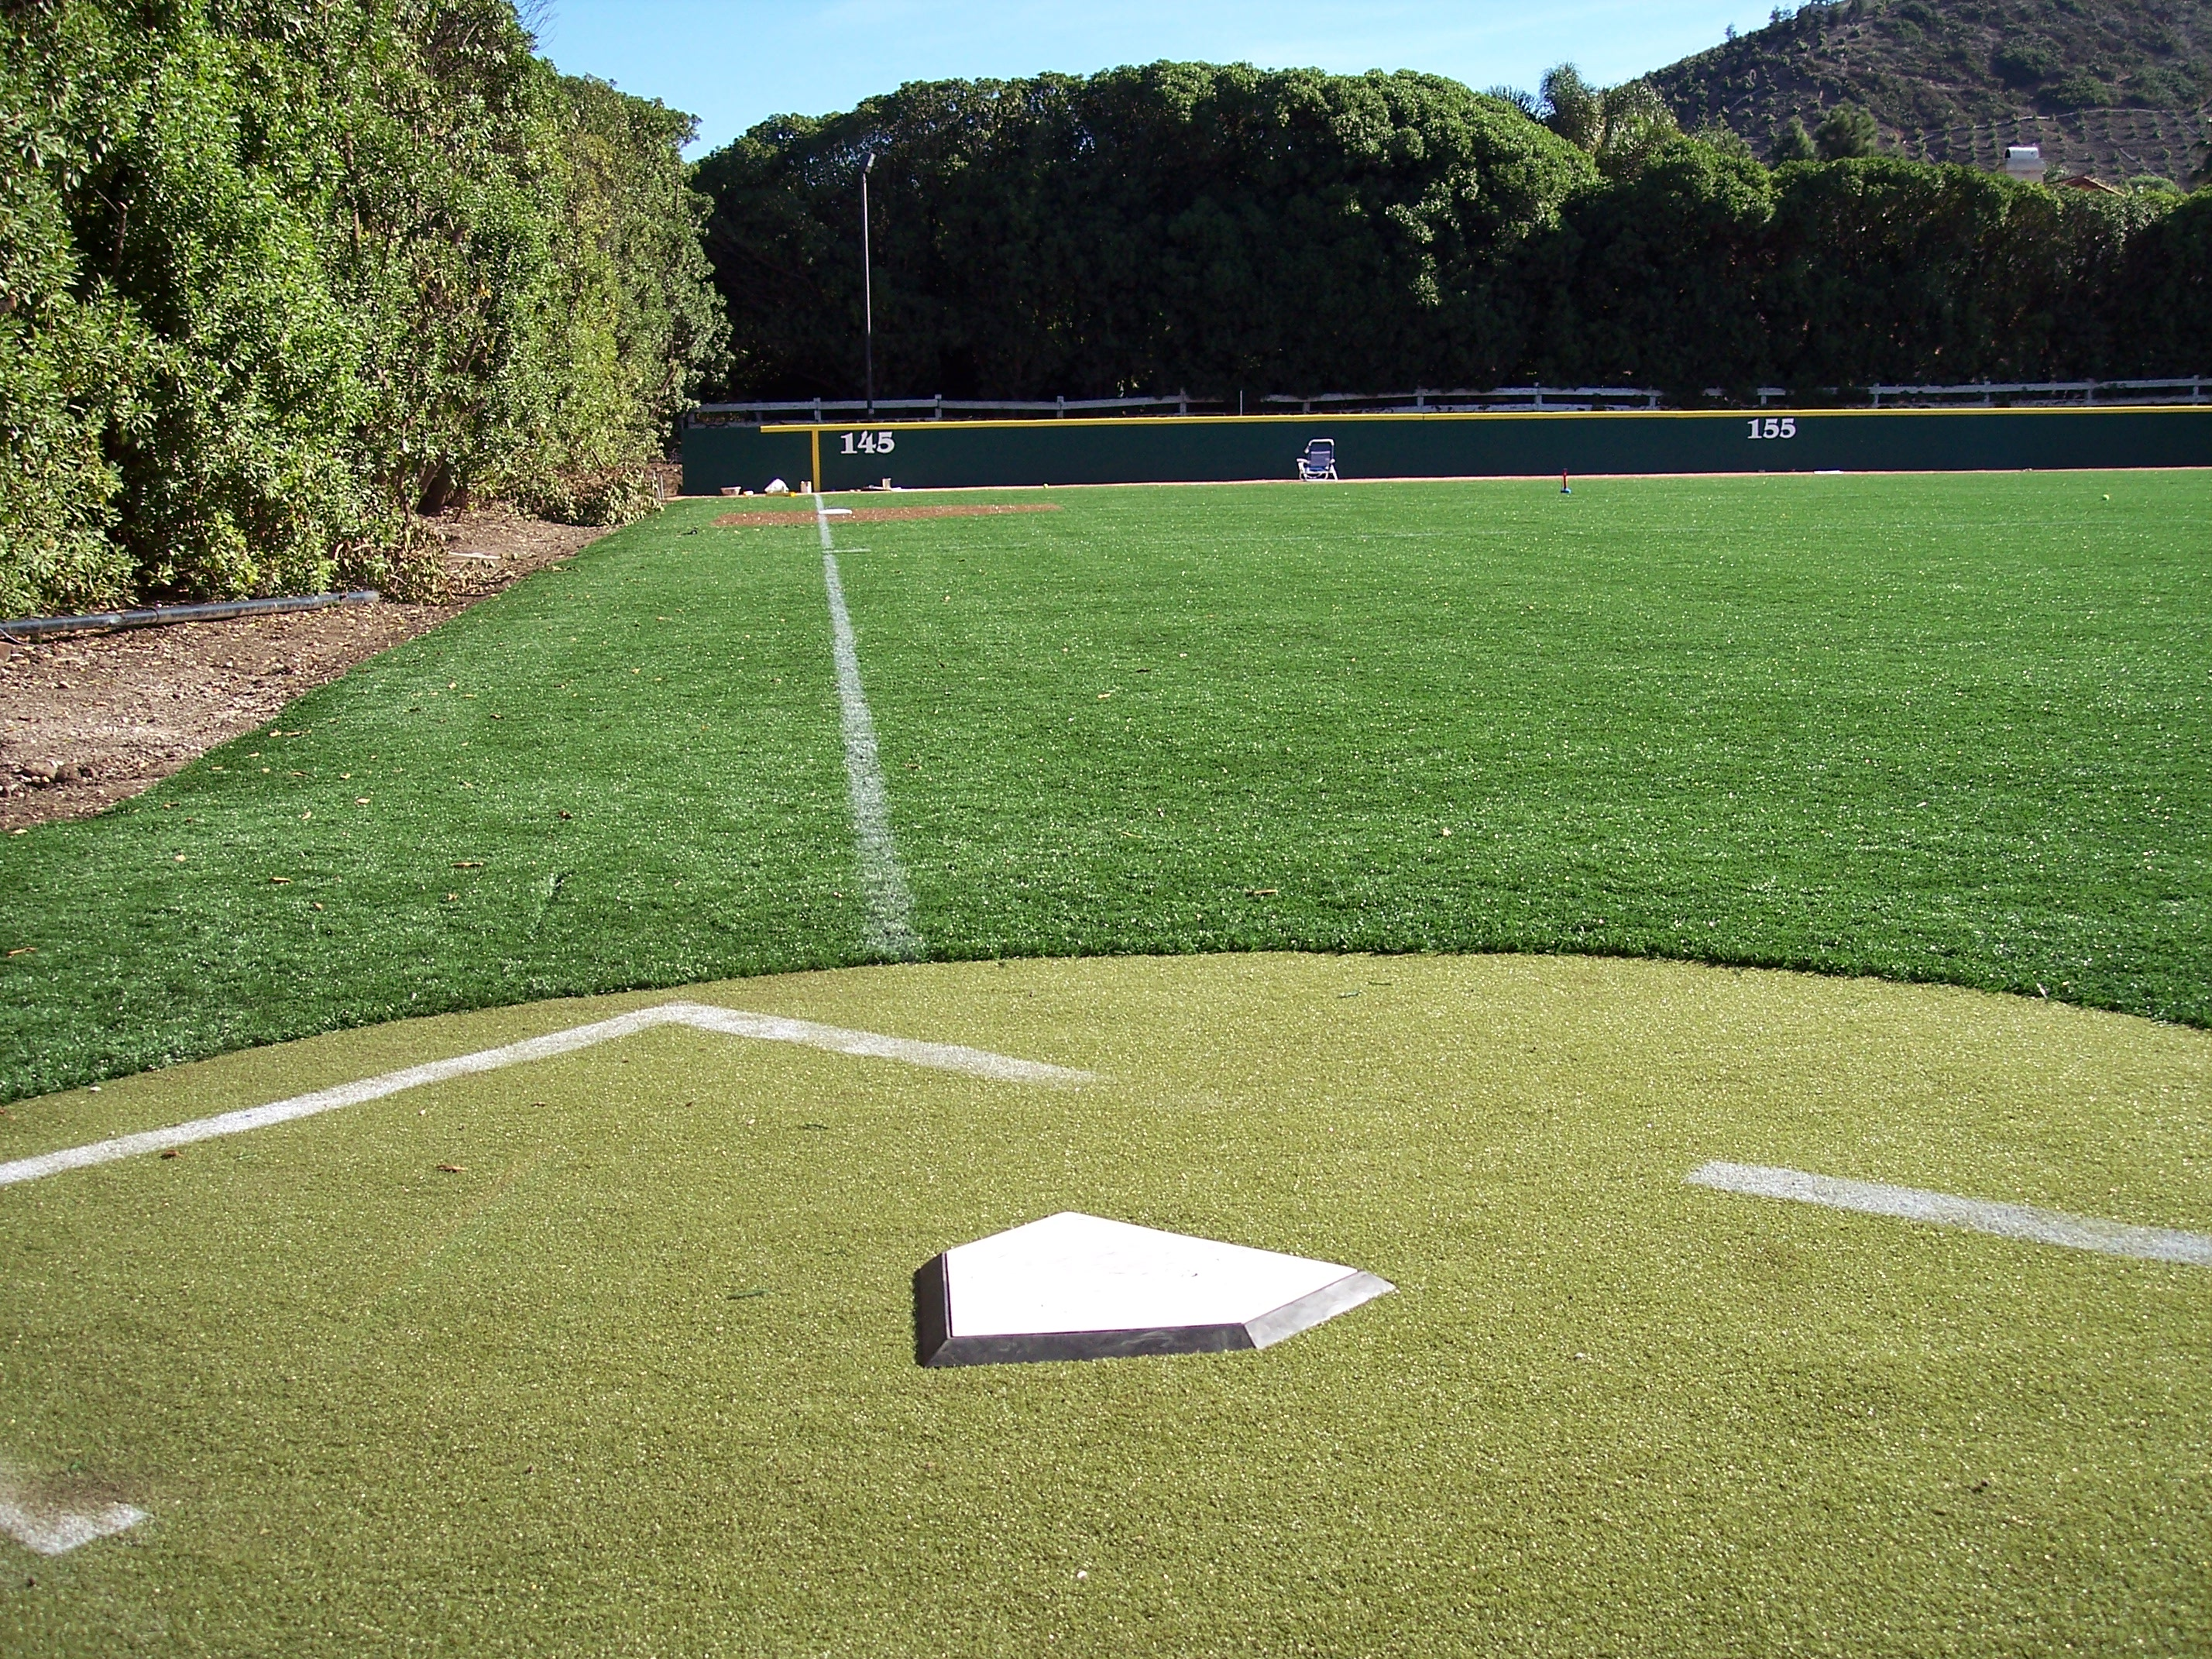 recent advances in synthetic turf and As the performance and safety of synthetic turf has recent media attention has renewed the controversy over the potential health risks of crumb rubber in.